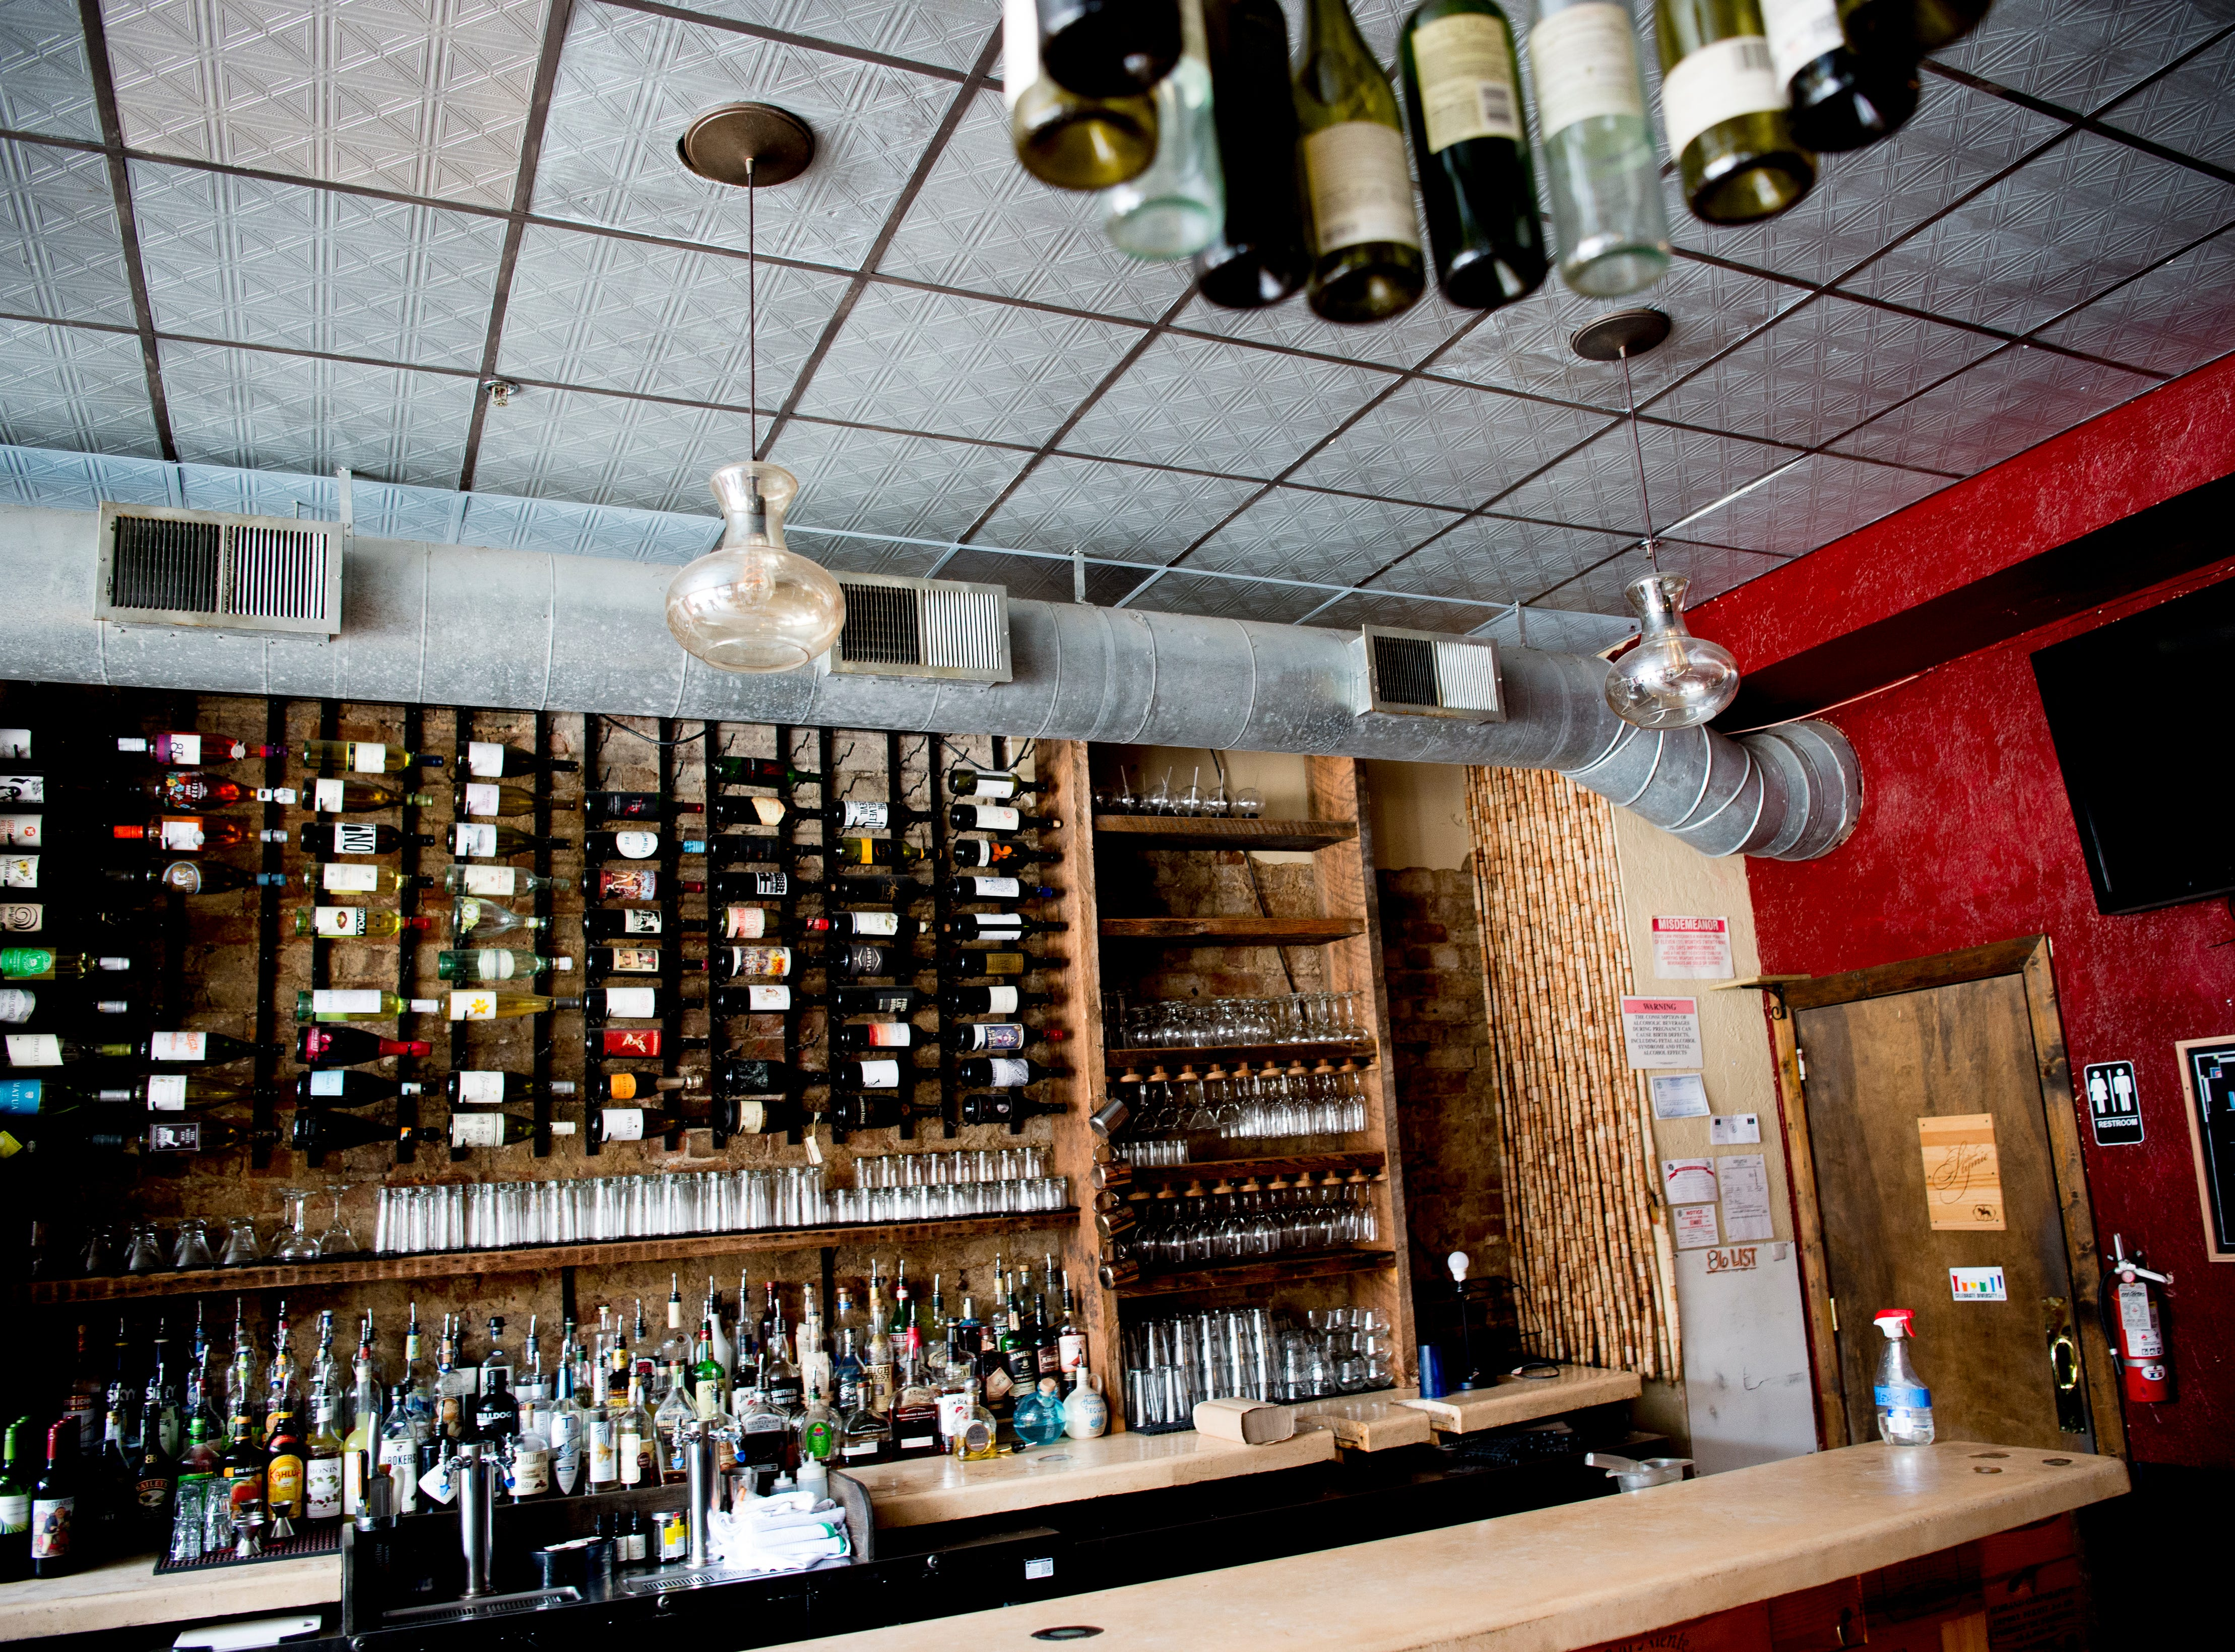 The bar inside Uncorked in Knoxville, Tennessee on Friday, February 15, 2019. Owner Scott West is replacing Uncorked with The Lost Tavern, a true crime-themed bar featuring upscale bar food, music from the 1940s in a dim, intimate setting.